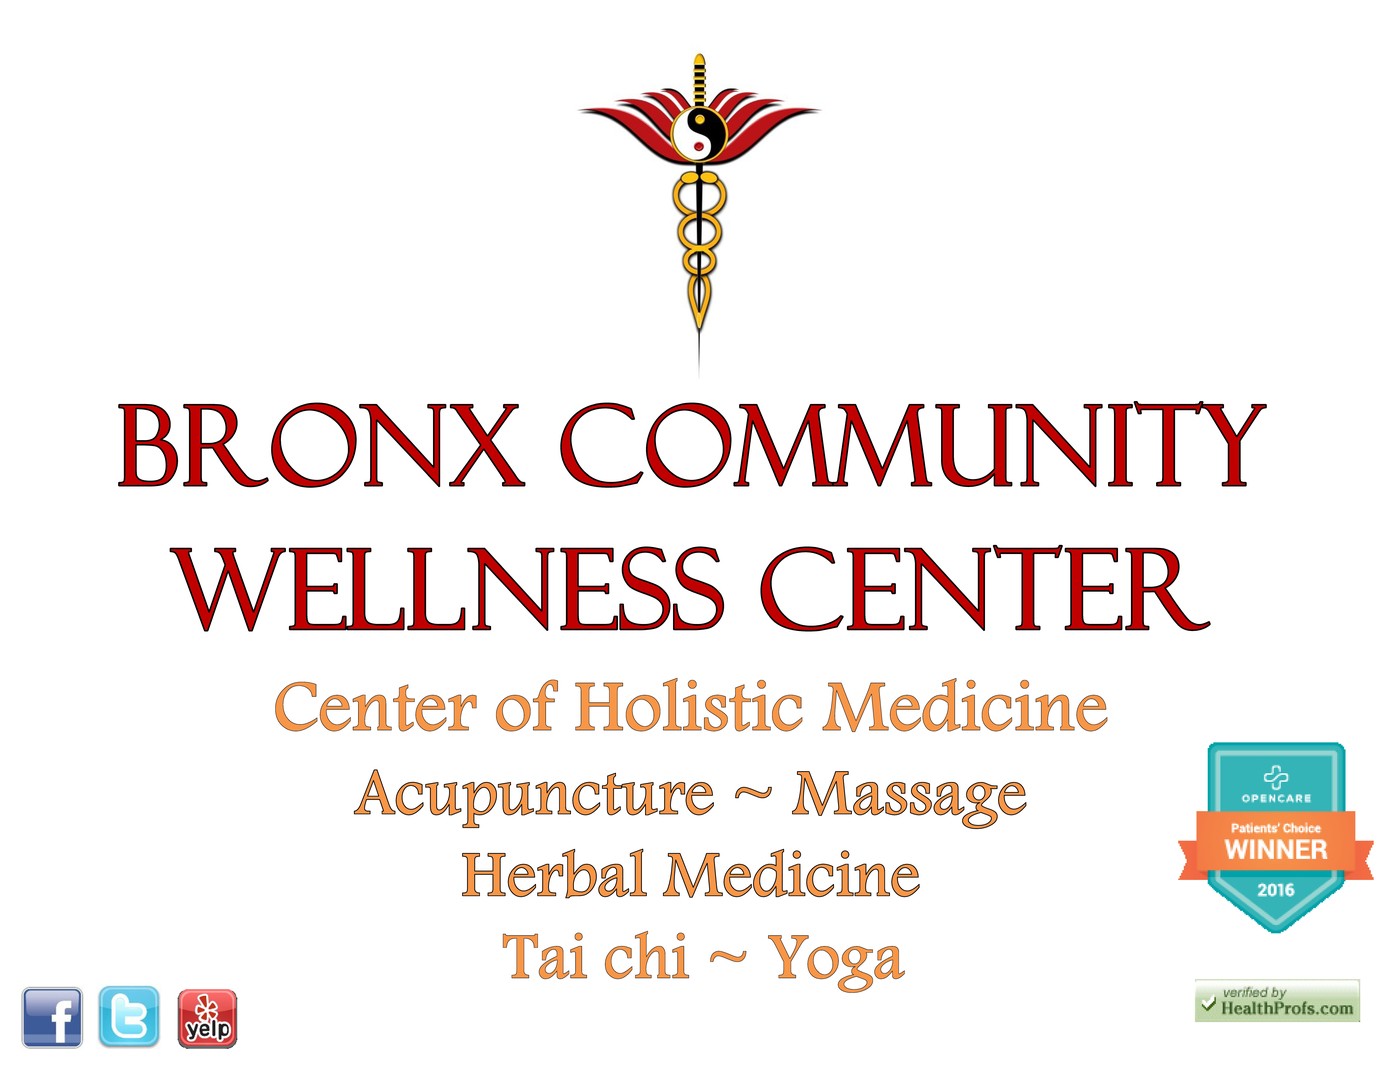 Center for holistic herbal therapy -  Bronx Community Wellness Center Has The Perfect Ambiance And Suitable Accommodations That Puts You In The Right Frame Of Mind In Preparation For Your